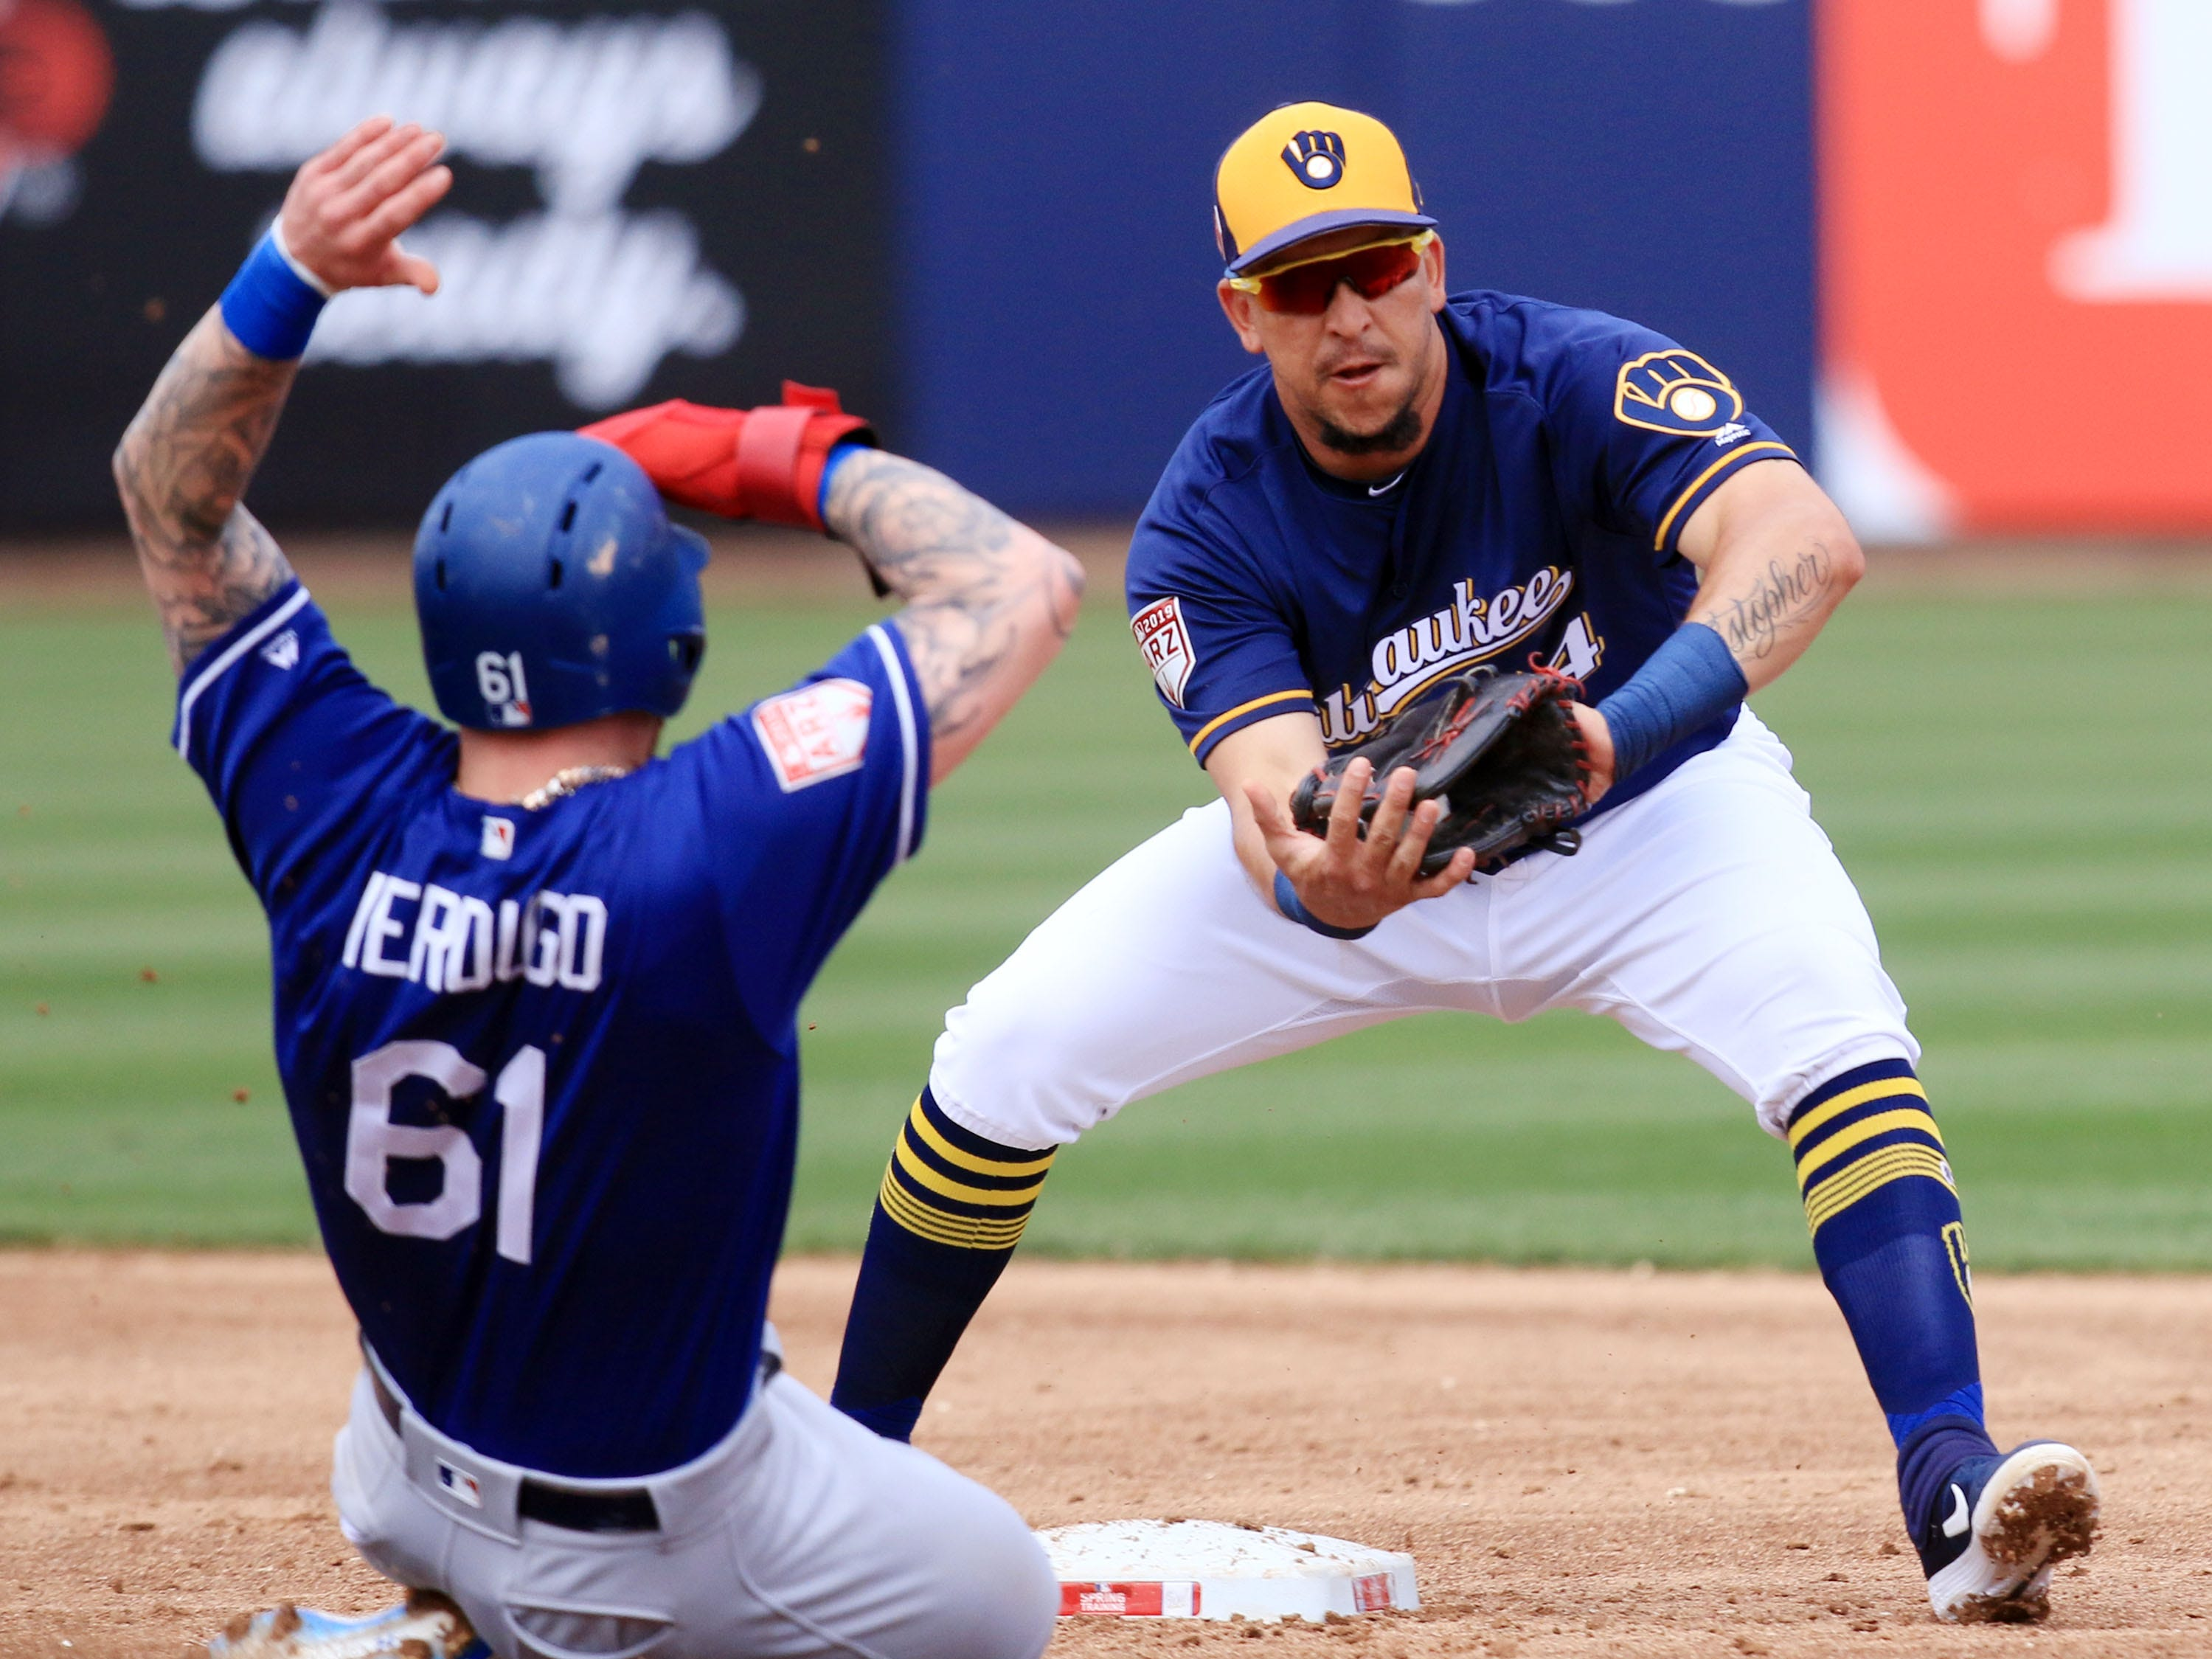 Brewers shortstop Hernan Perez receives a throw from Mike Moustakas to force out Alex Verdugo of the Dodgers at second during the second inning.